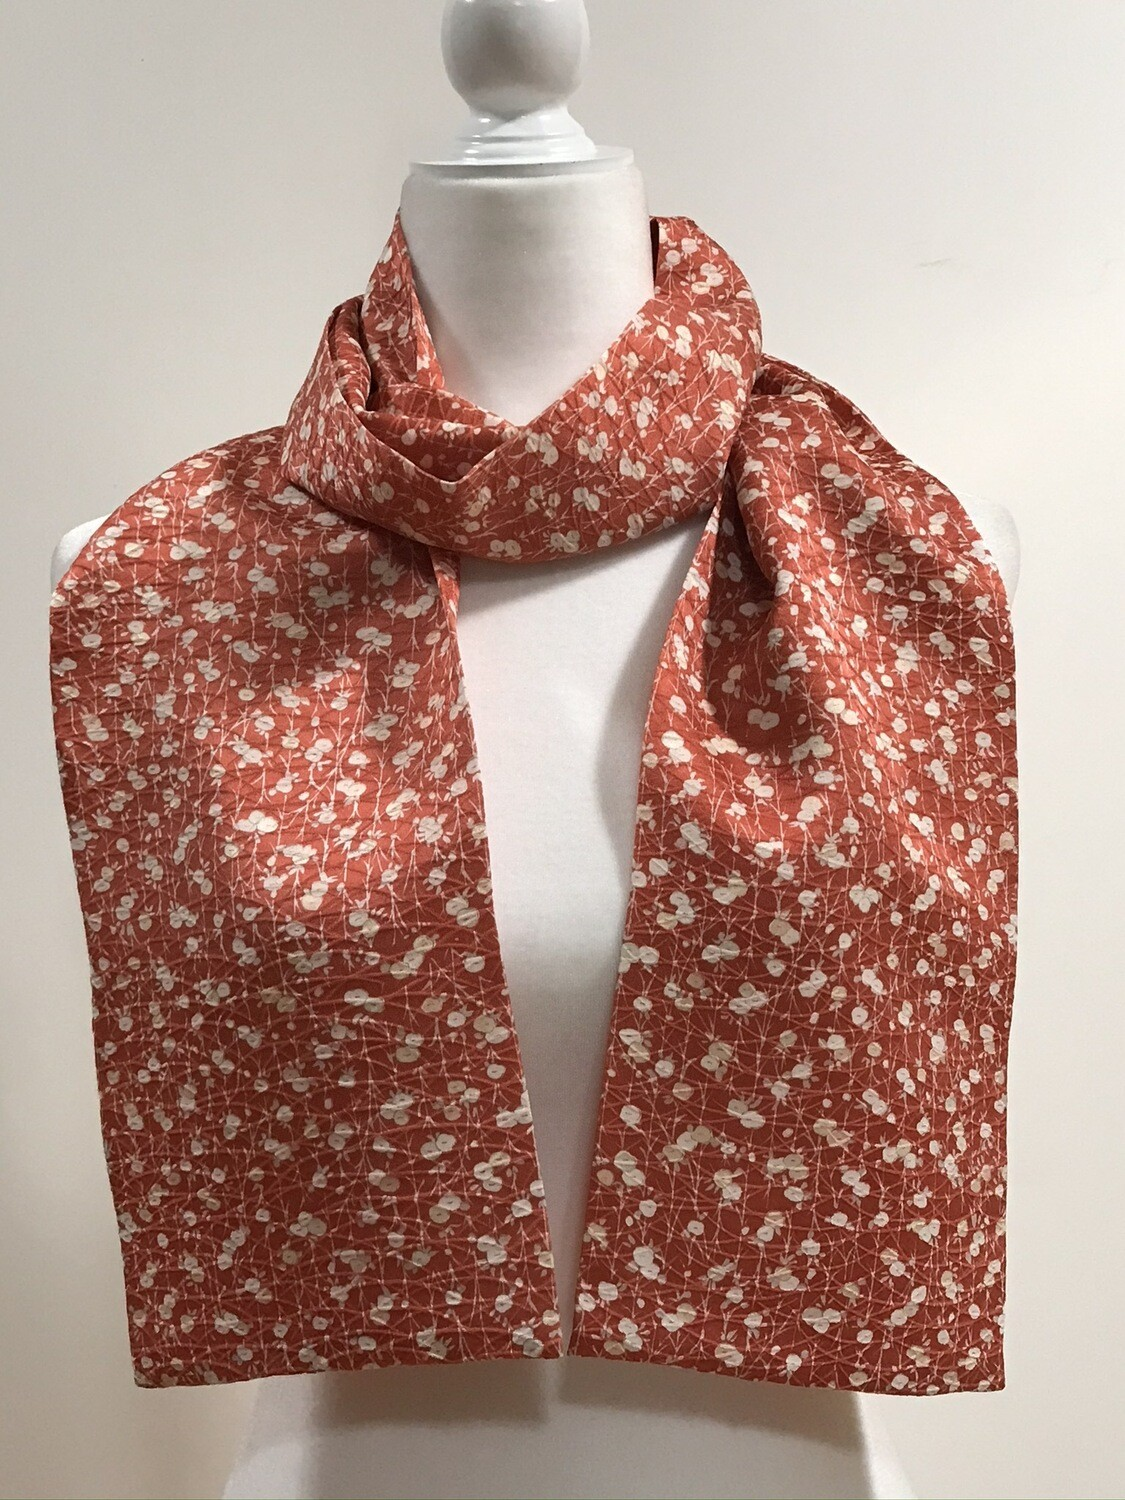 Scarf 7 x 64in